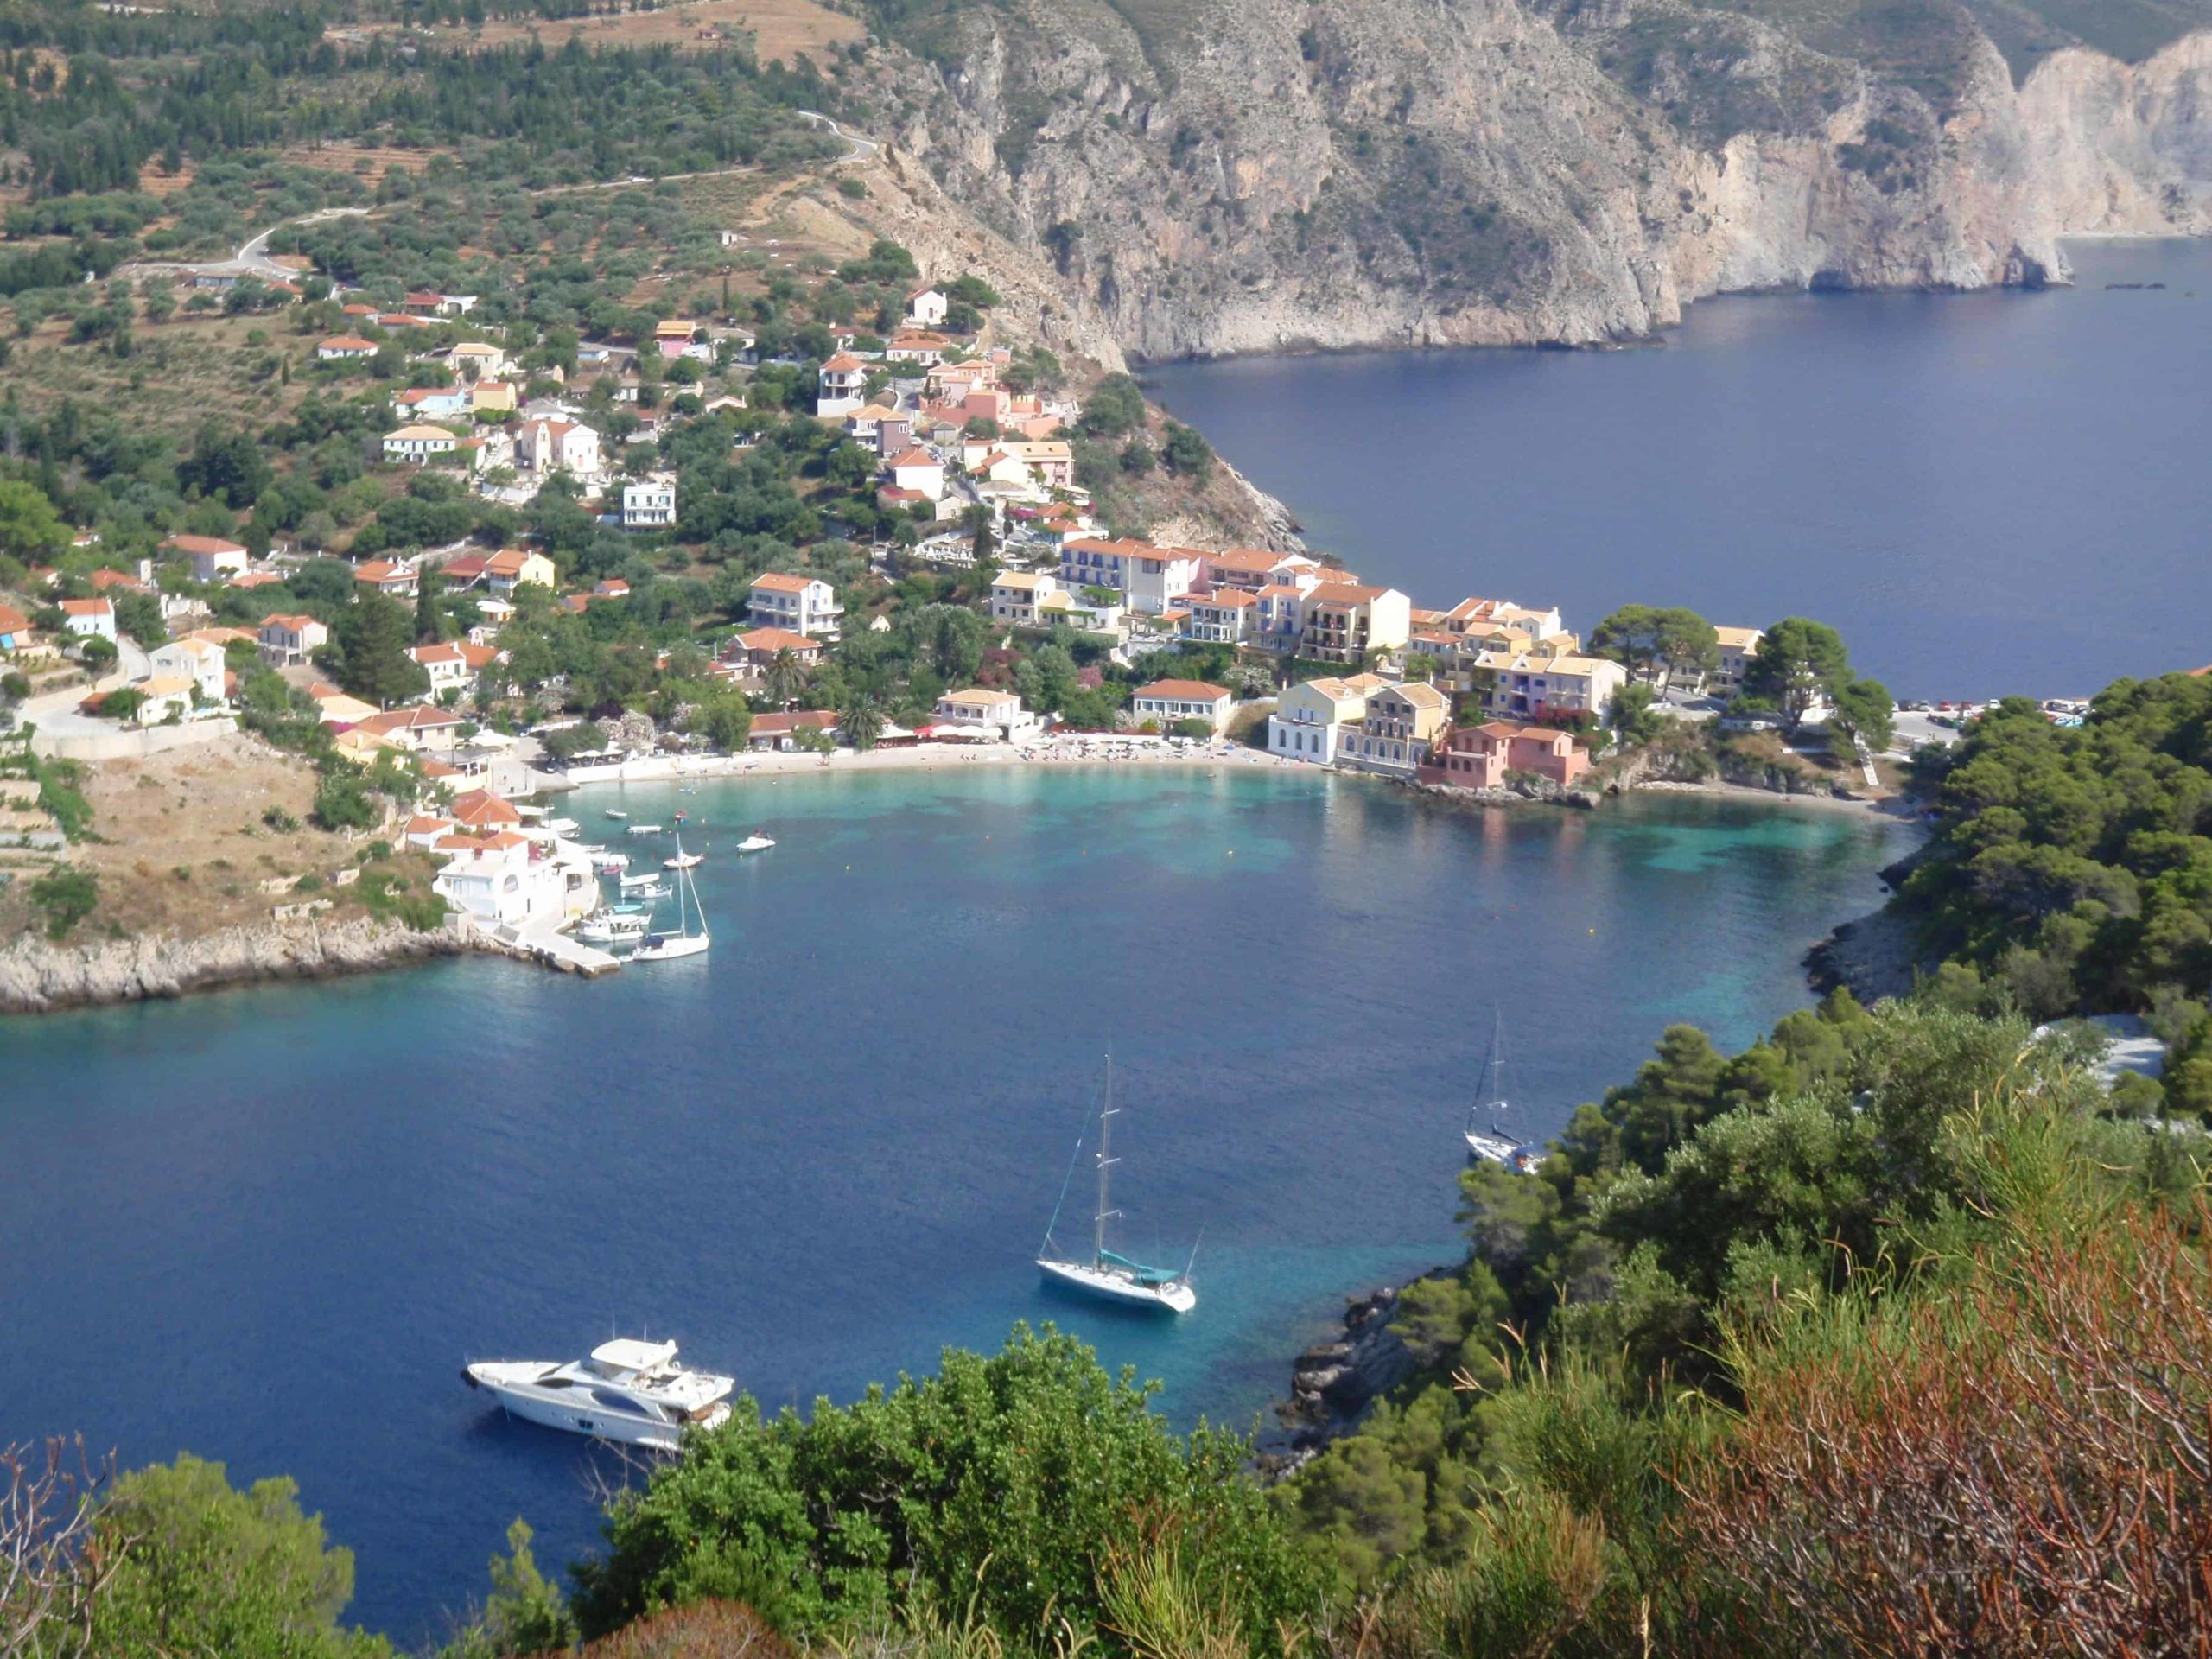 Looking down at the yachts in Assos bay